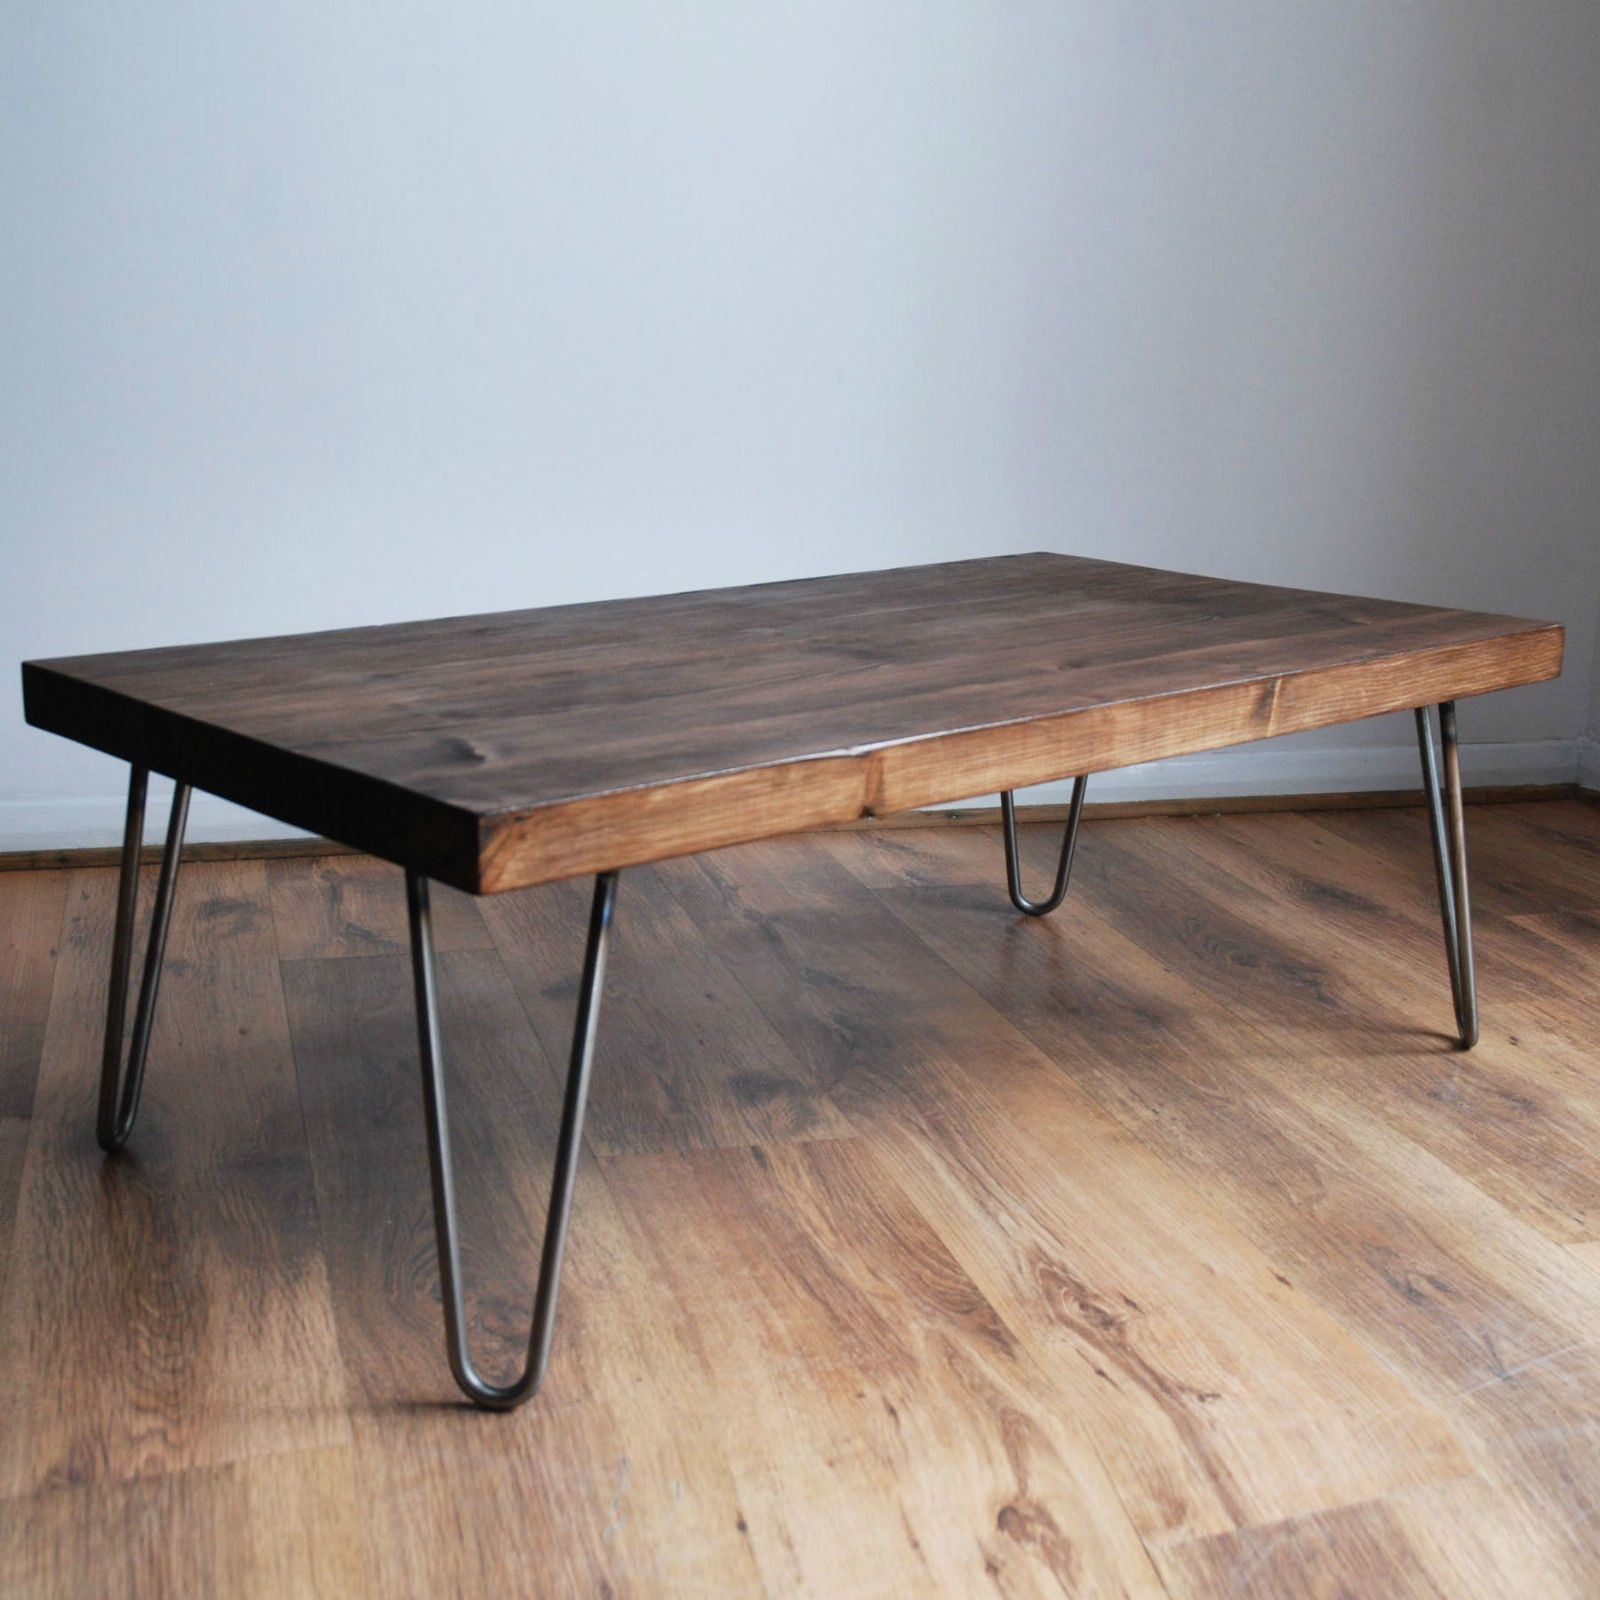 Couchtisch Claudia Vintage Rustic Vintage Industrial Solid Wood Coffee Table-bare Metal Hairpin Legs, Dark In Home, Furniture & Diy… | Couchtisch Massivholz, Couchtisch, Rustikale Couchtische